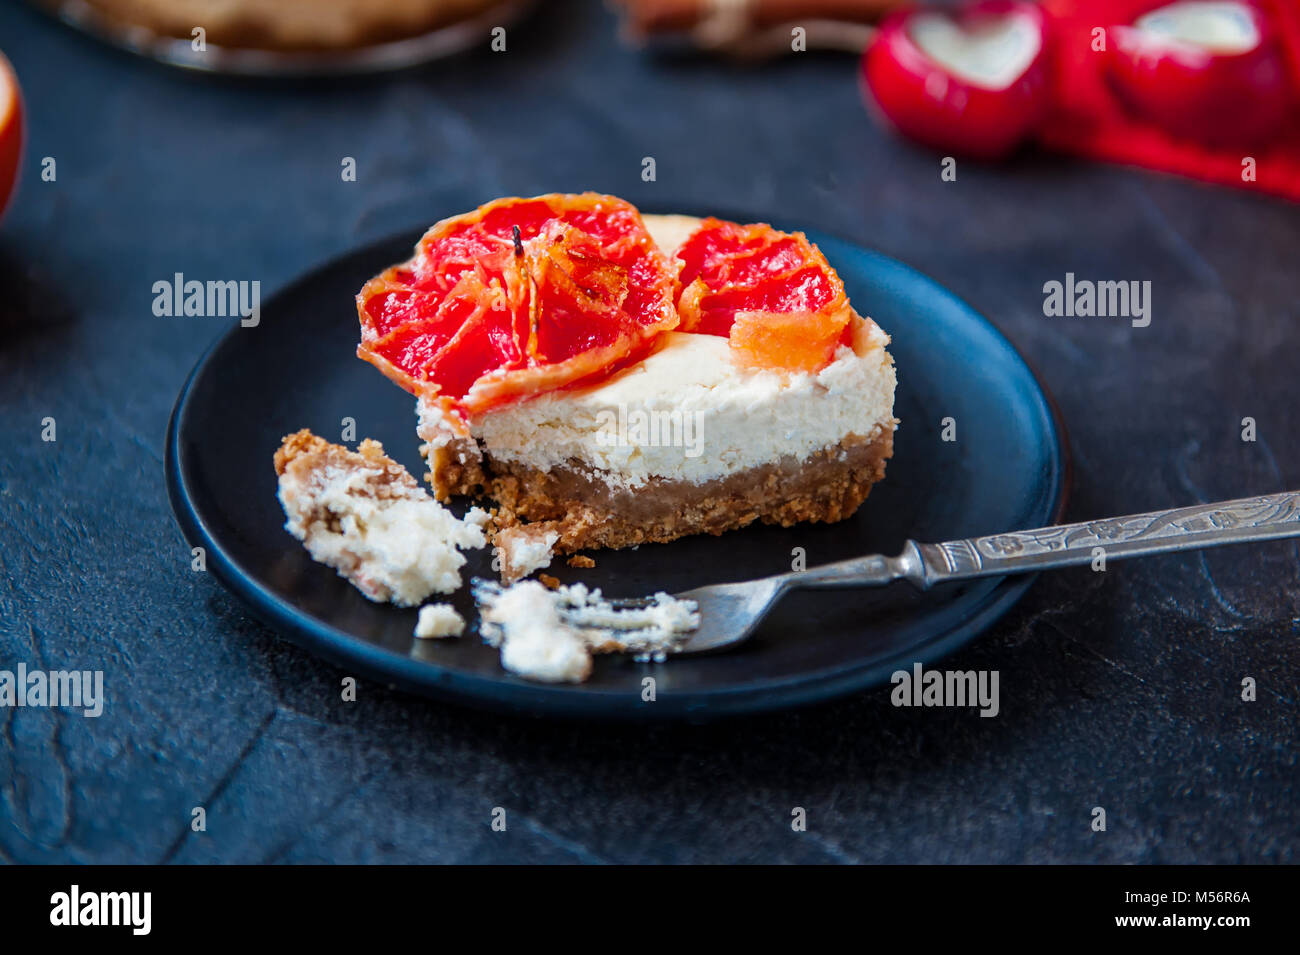 Plate with piece of baked cheesecake with red grapefruit slices and vintage fork on the black stone background with Stock Photo